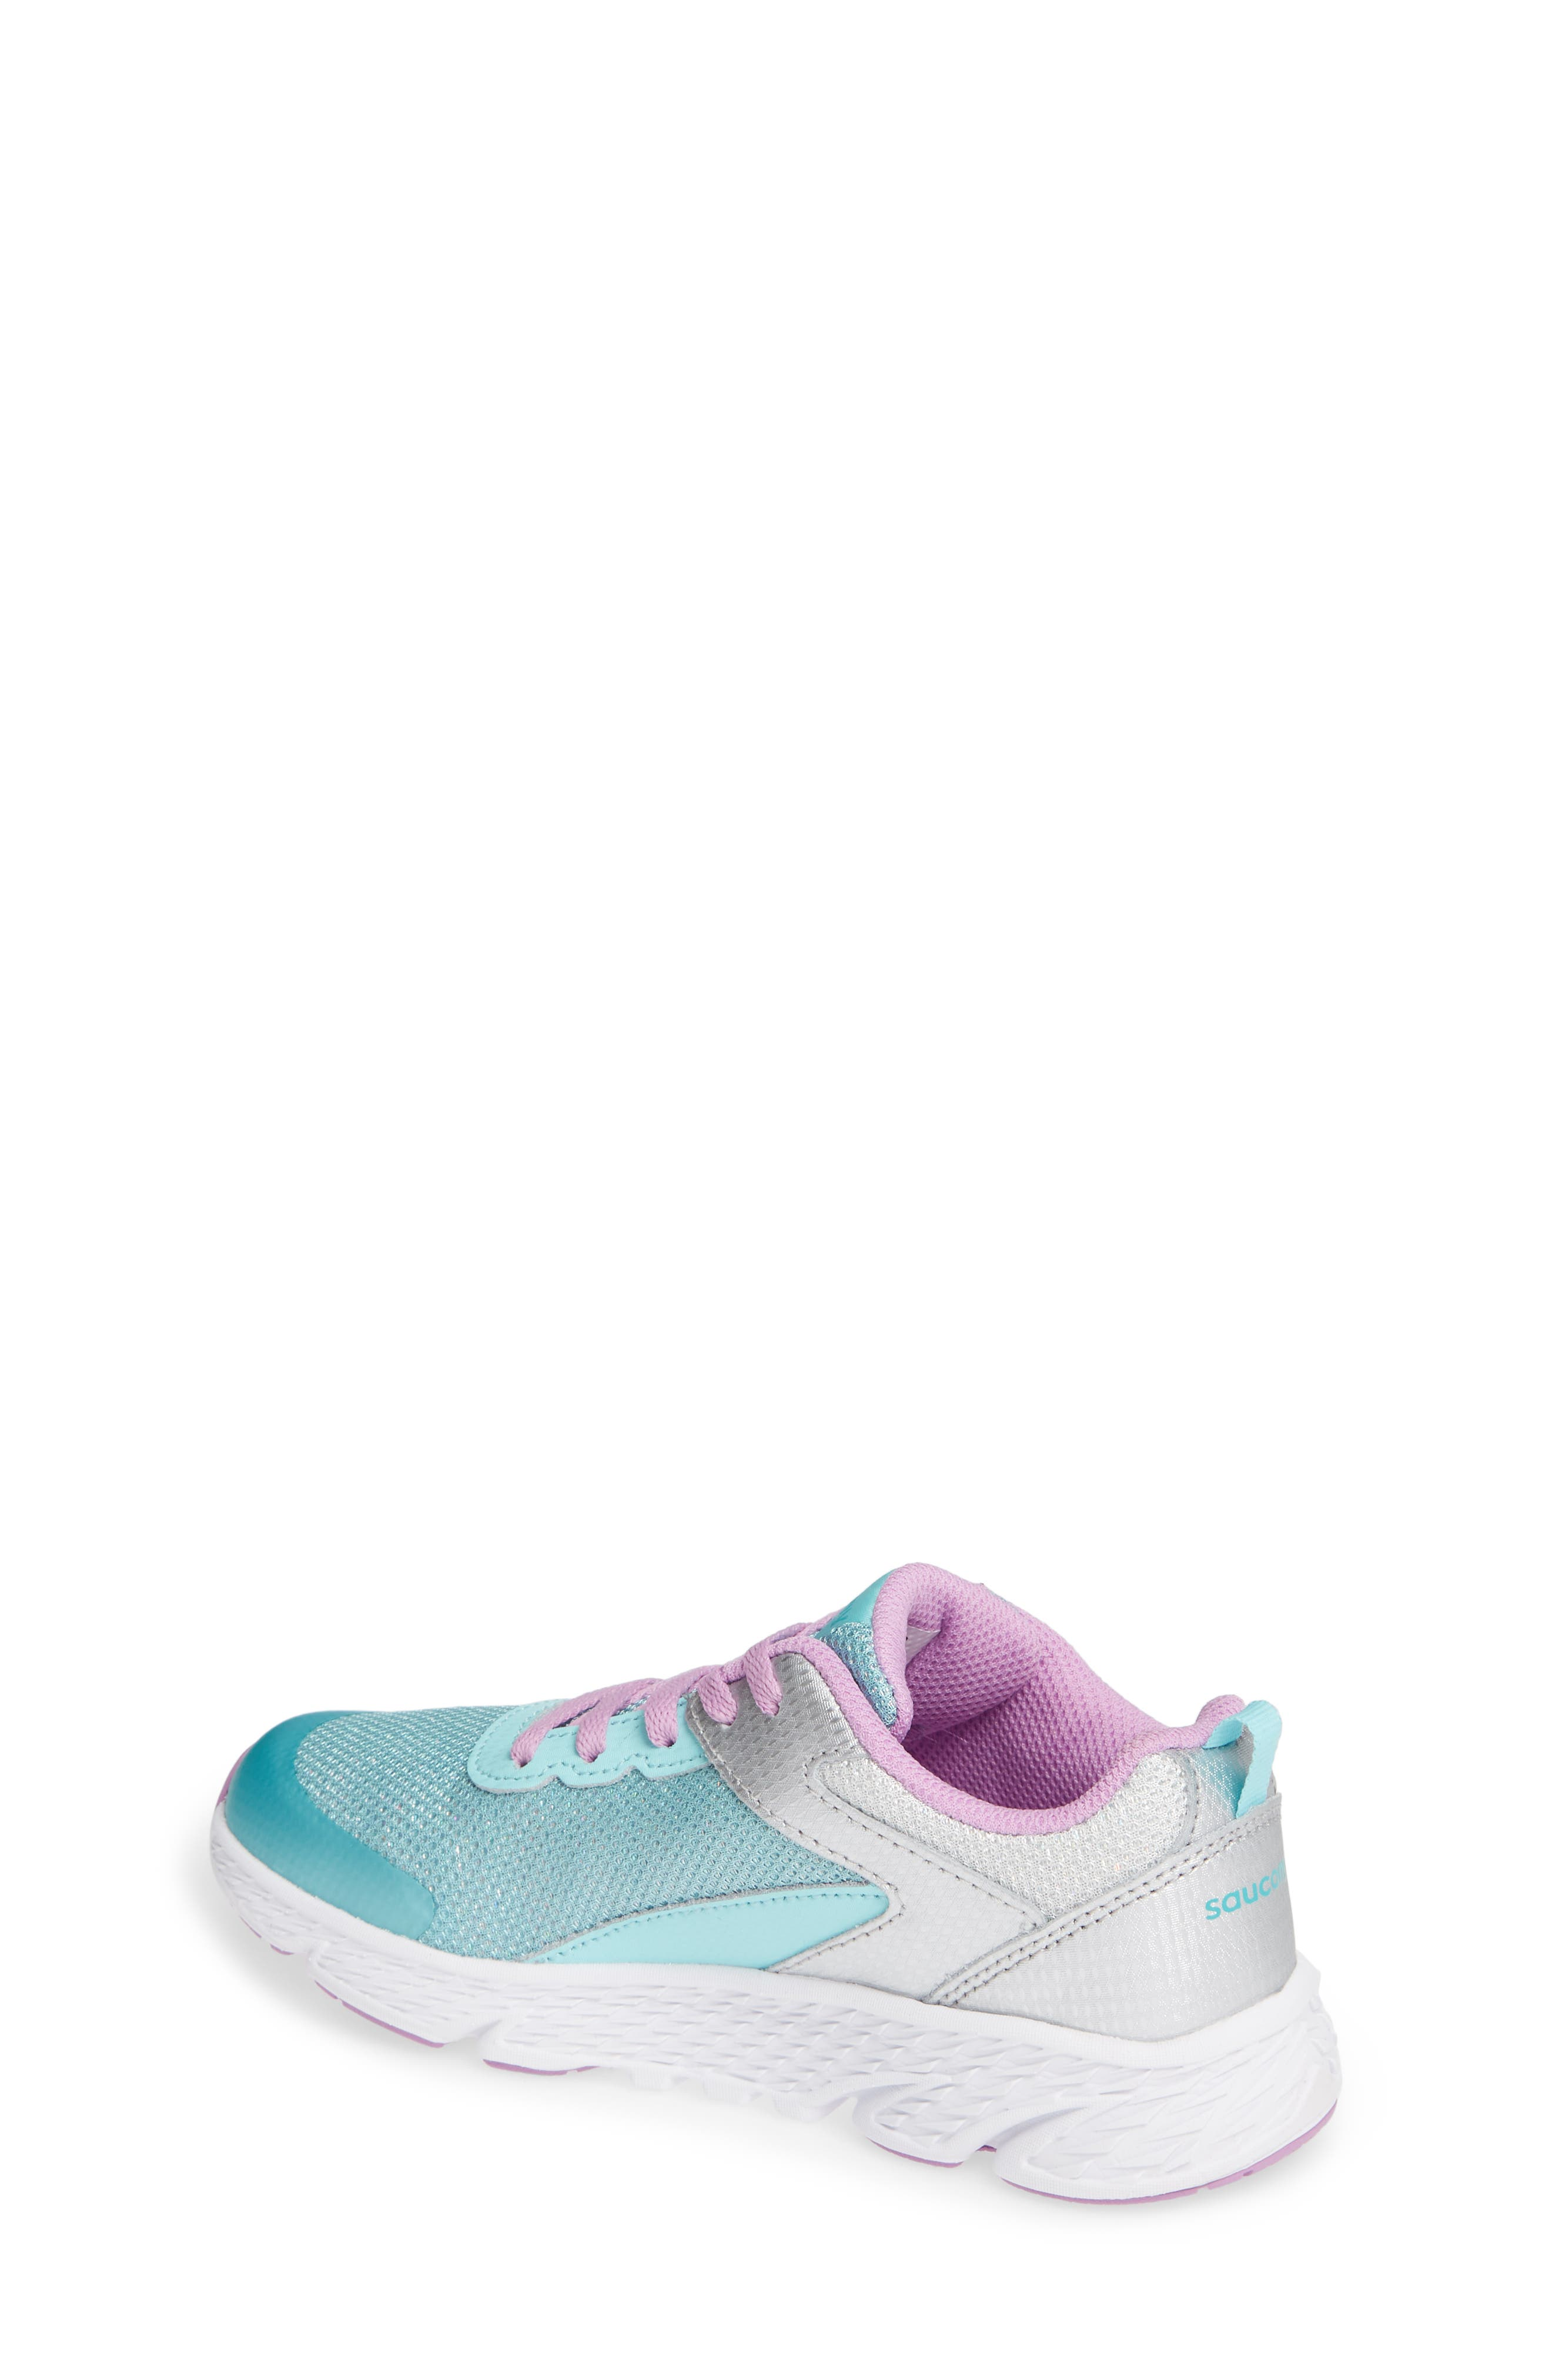 Wind Sneaker,                             Alternate thumbnail 2, color,                             TURQUOISE/ SILVER